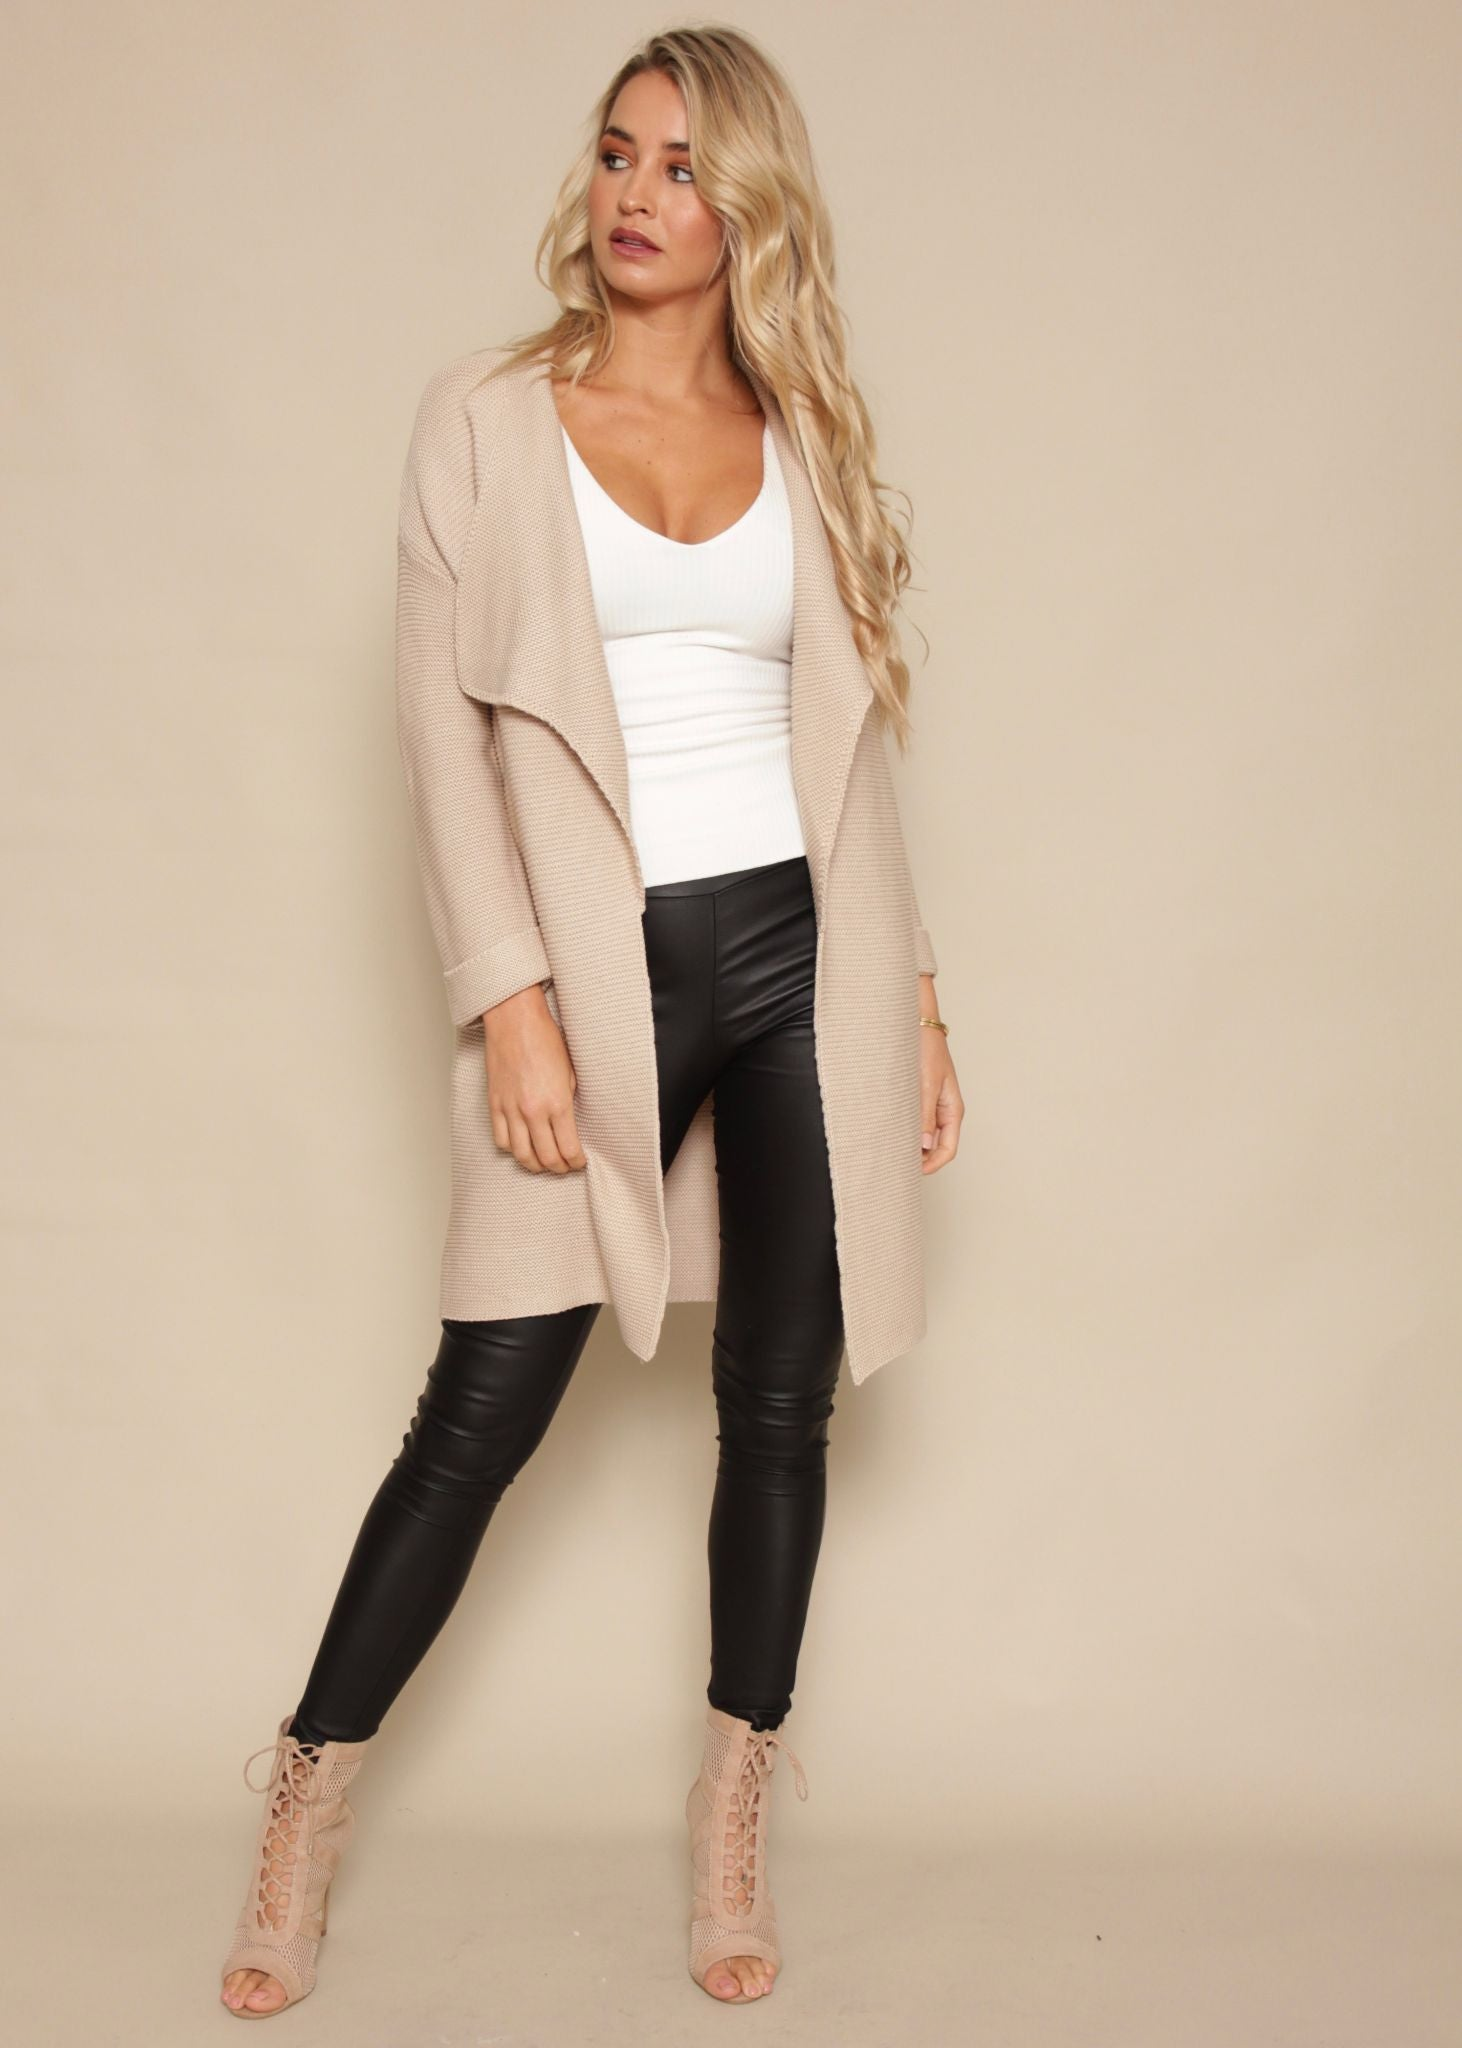 Lover Of Mine Knit Cardigan - Blush